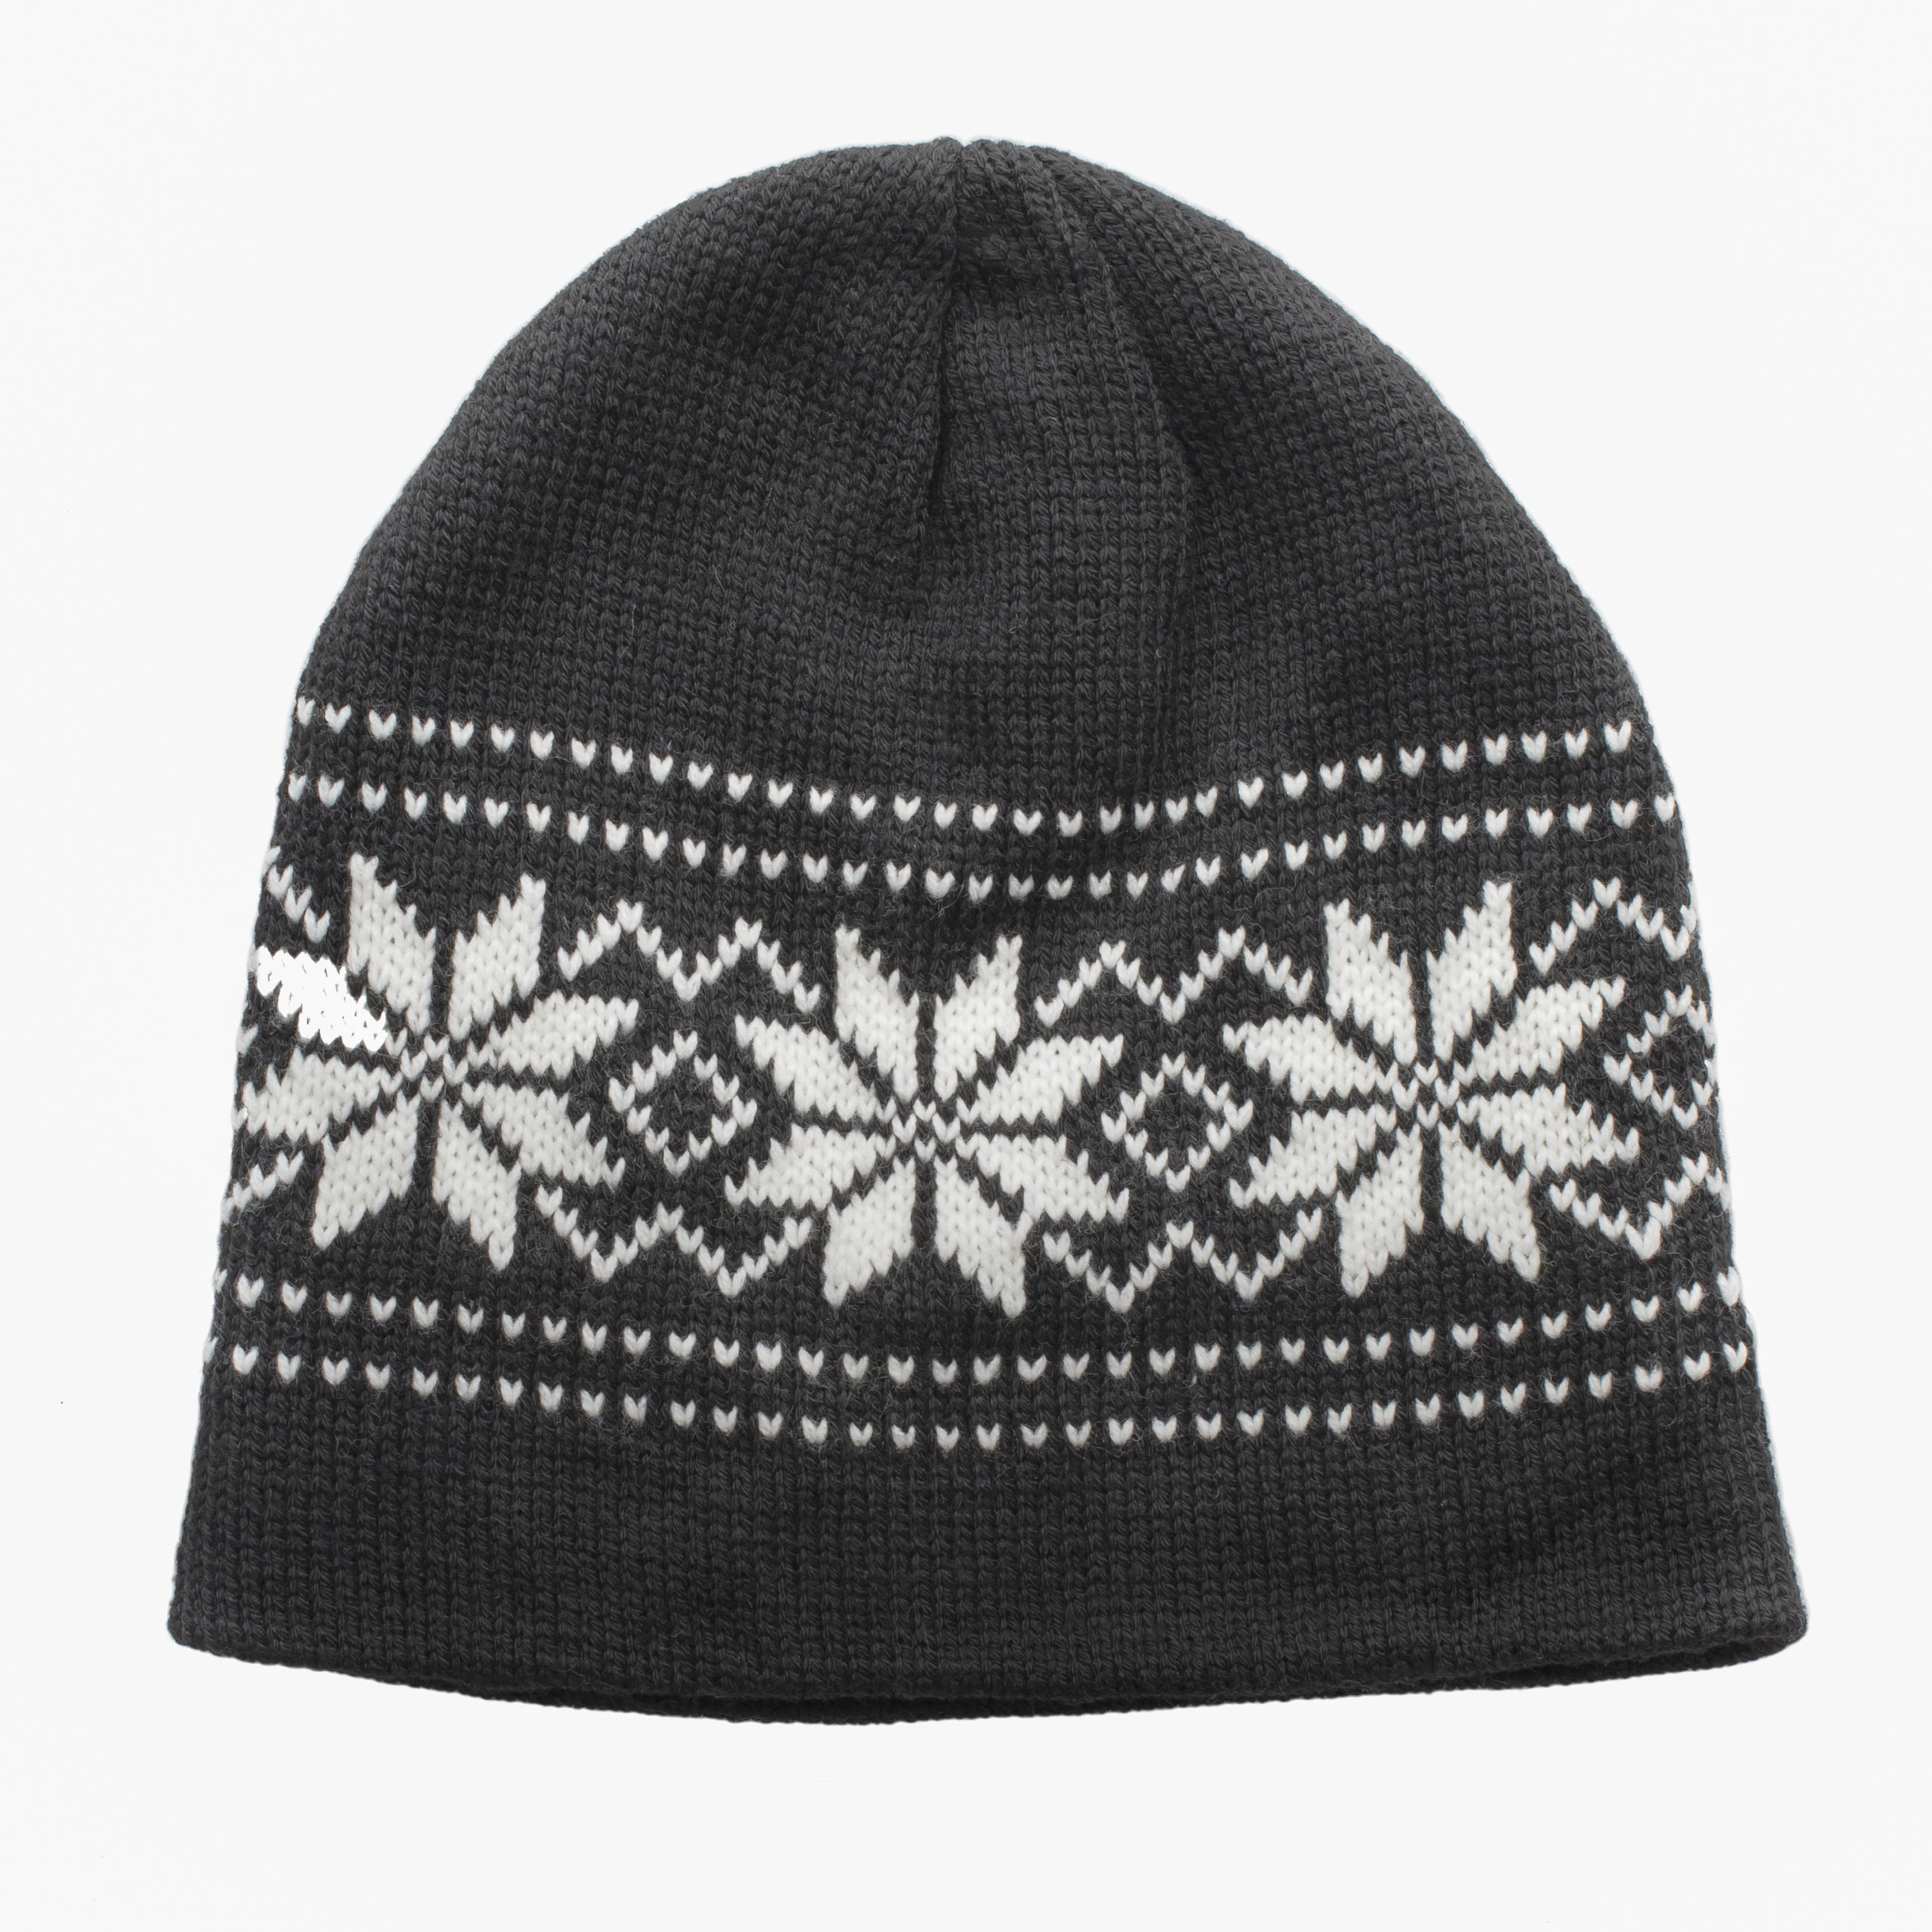 WOMAN KNITTED BEANIE-BLACK/WHITE